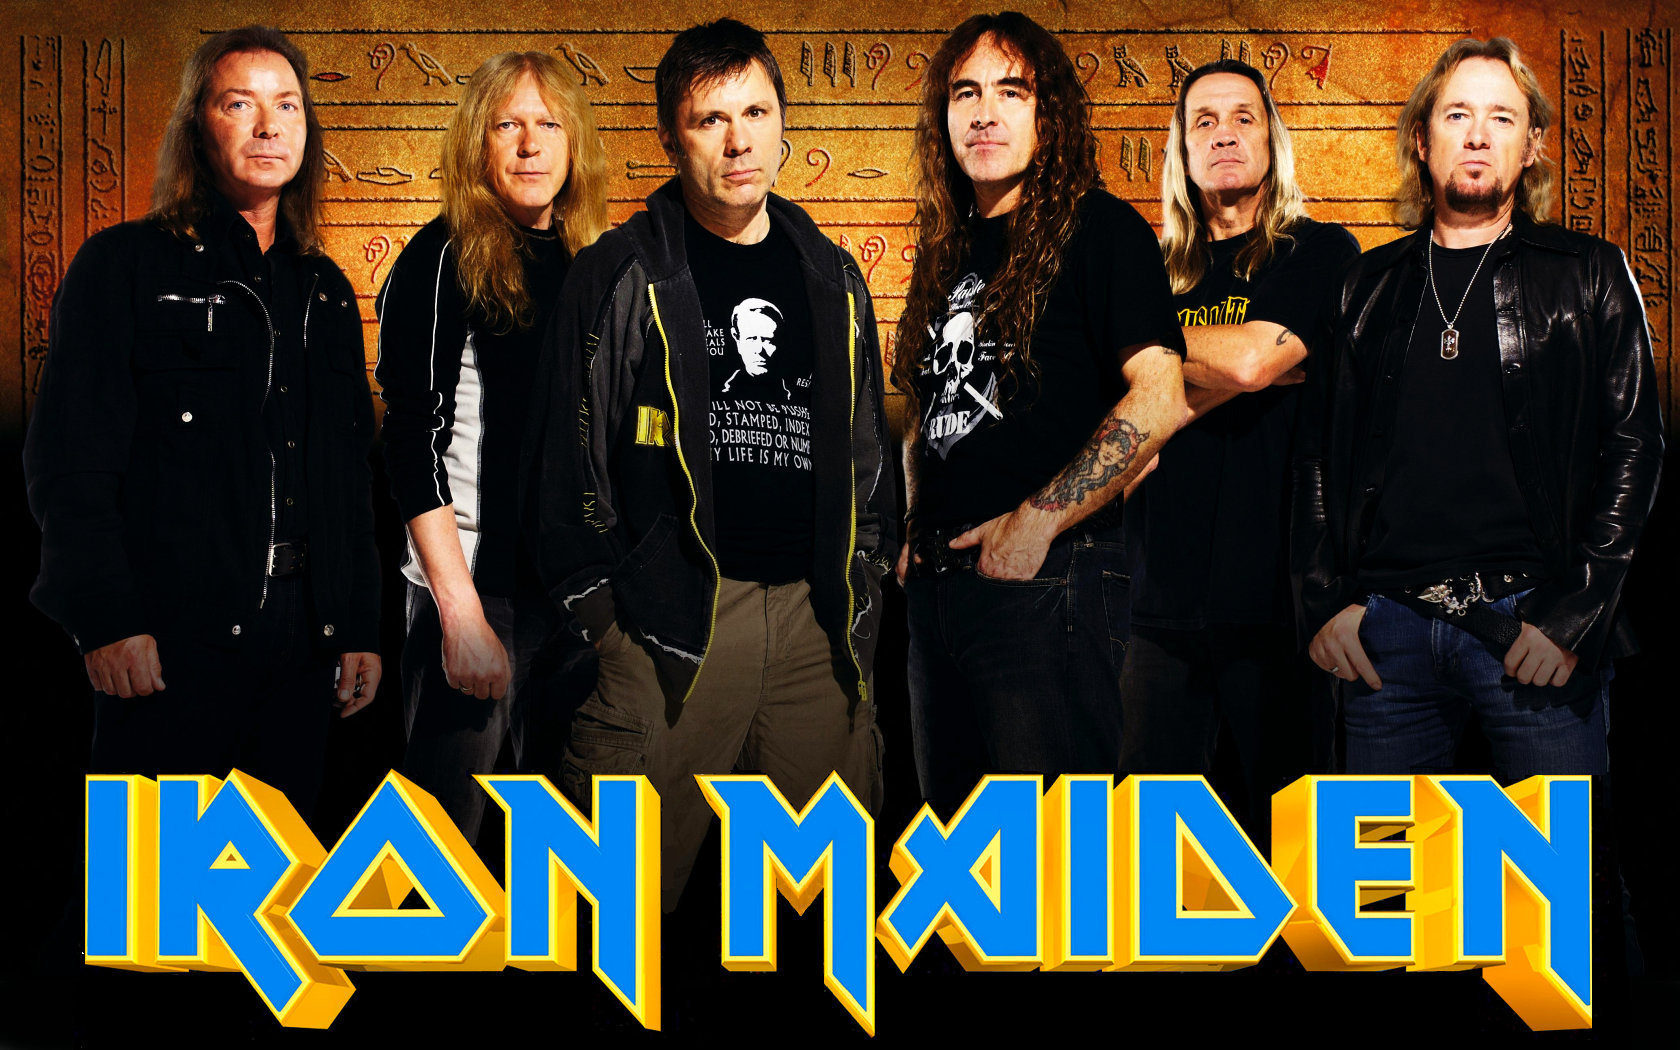 Free download Iron Maiden wallpaper ID:72529 hd 1680x1050 for computer